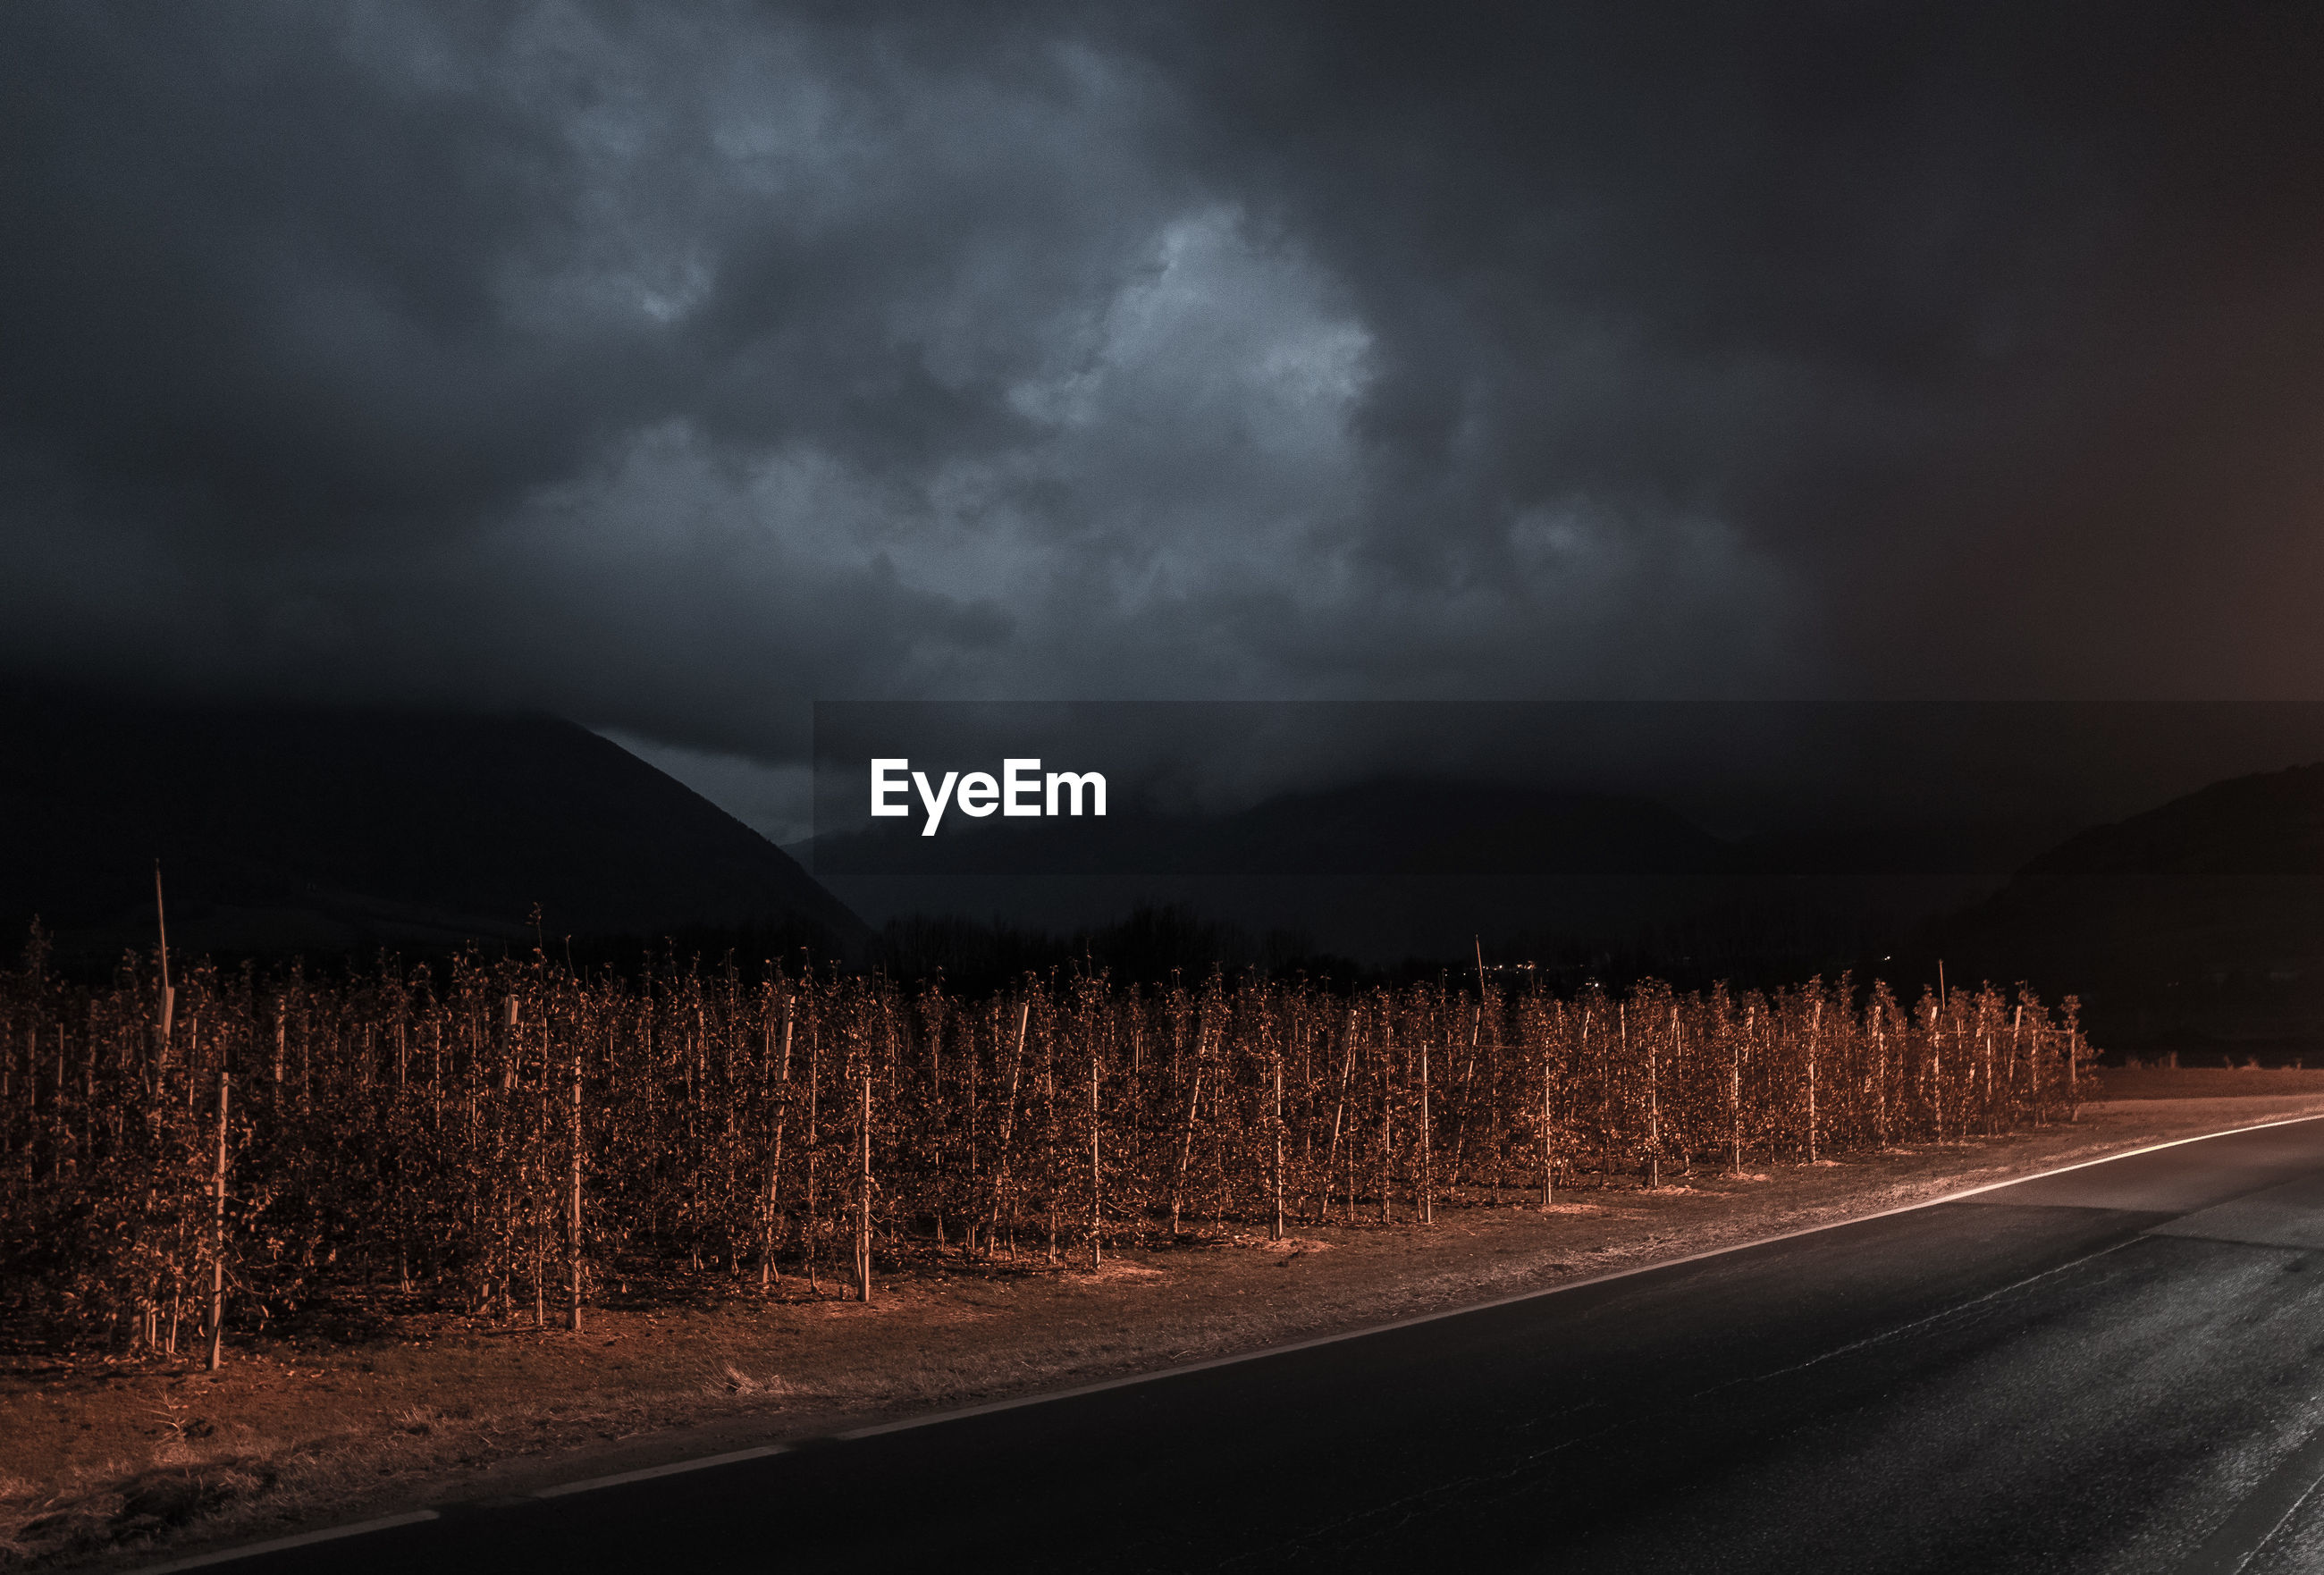 SCENIC VIEW OF ROAD AGAINST STORM CLOUDS